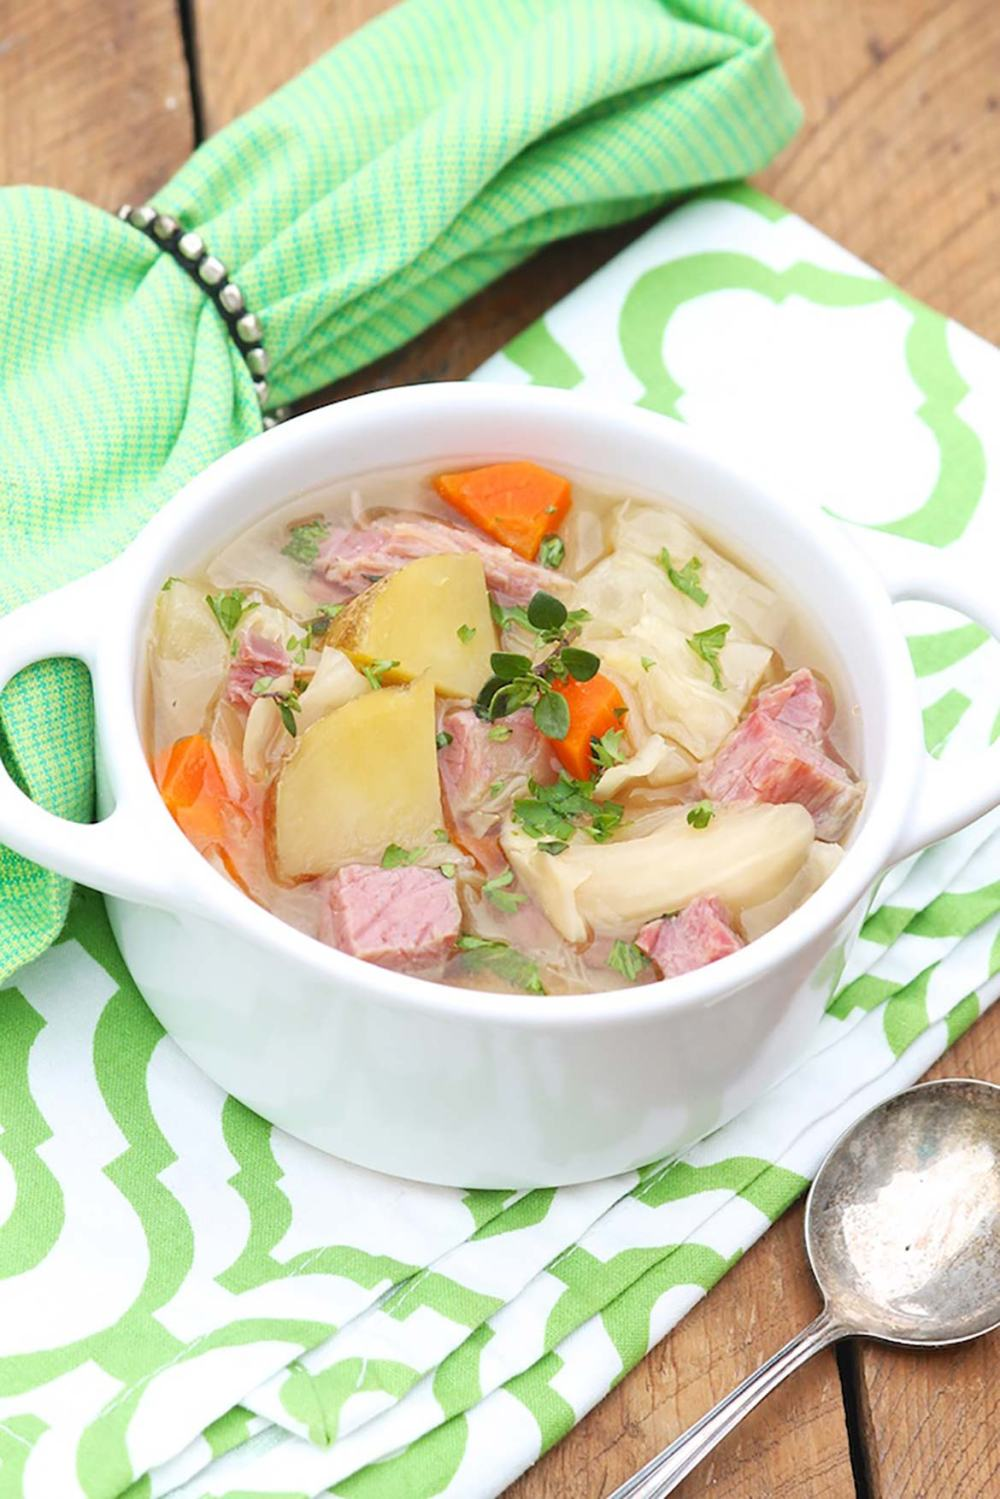 A wholesome, soul-warming way to enjoy the classic flavors of corned beef and cabbage